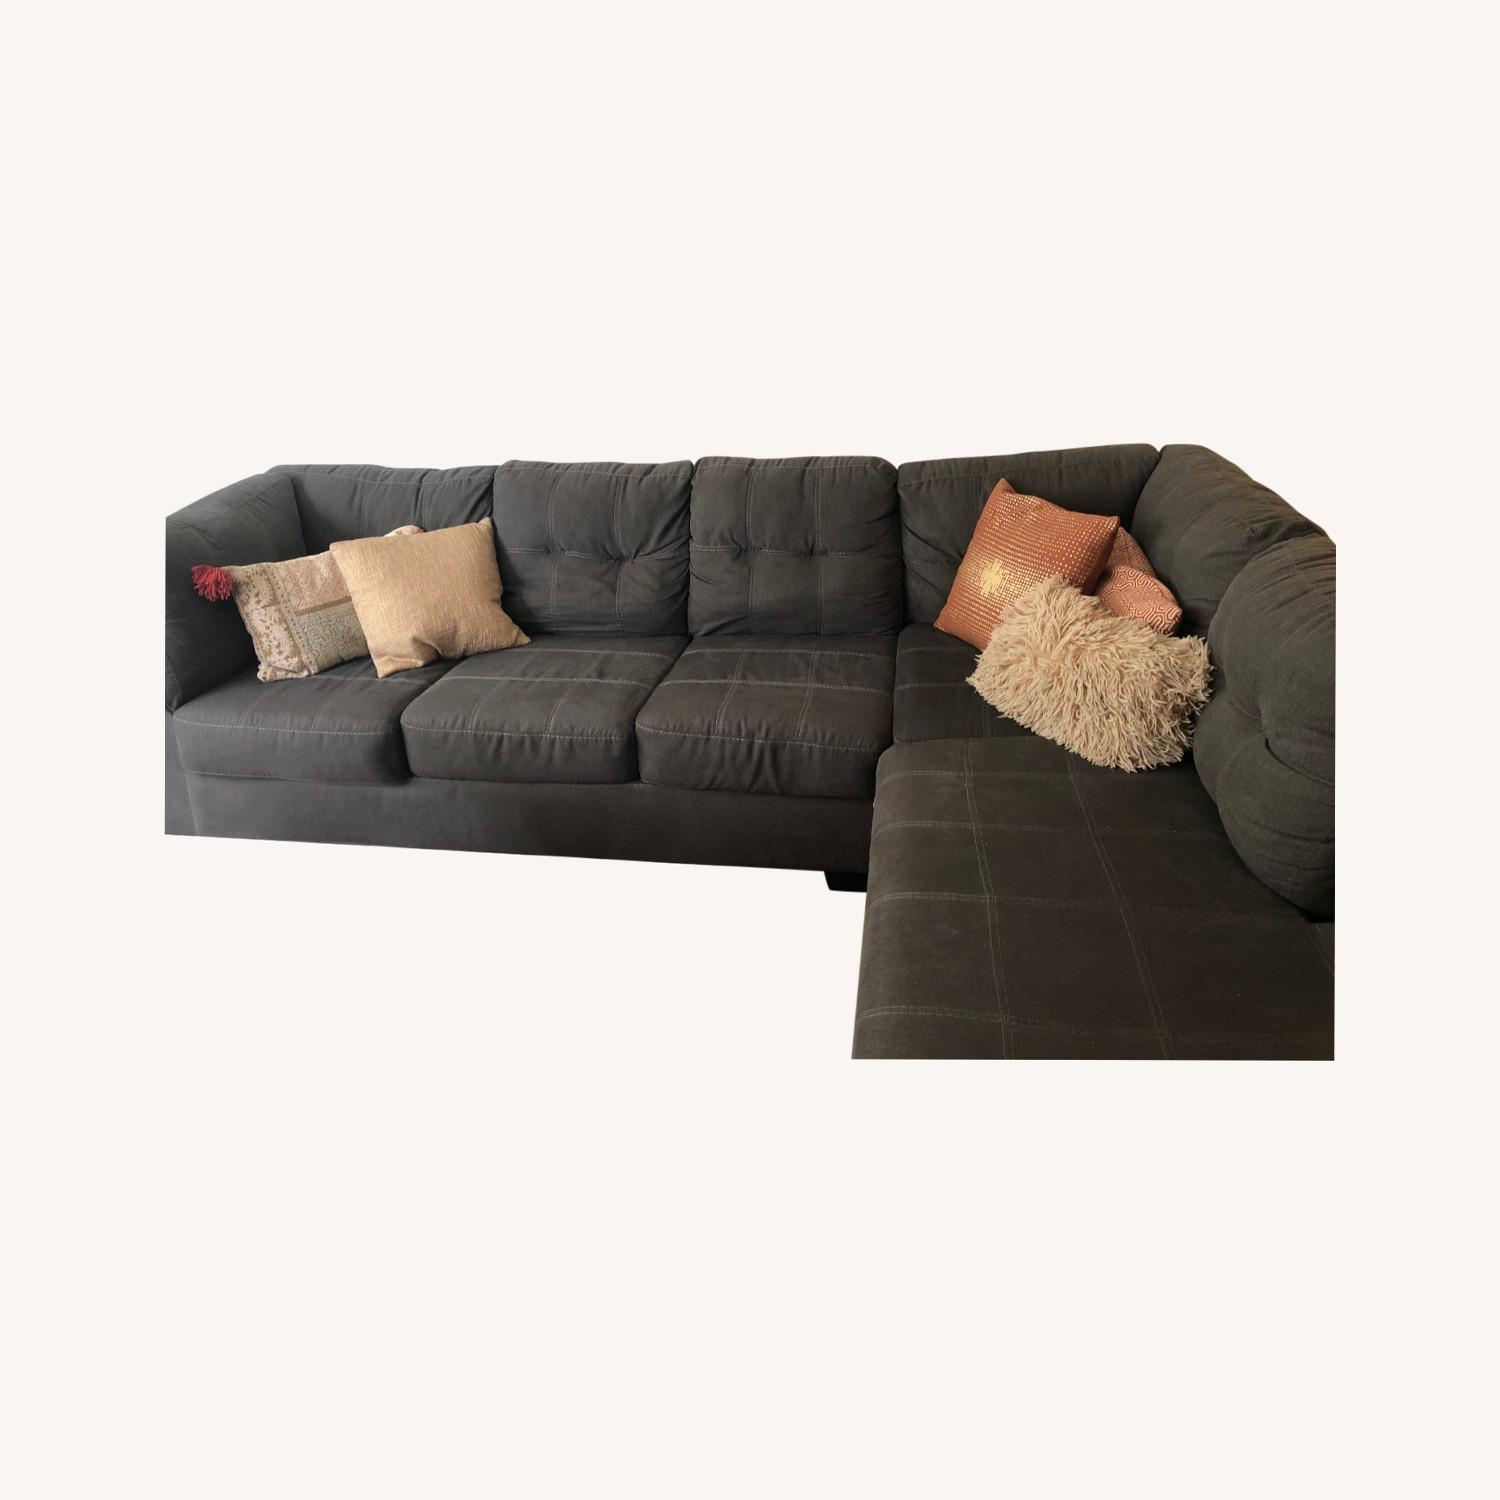 Jennifer Convertibles Sectional Sofa with Chaise - image-0